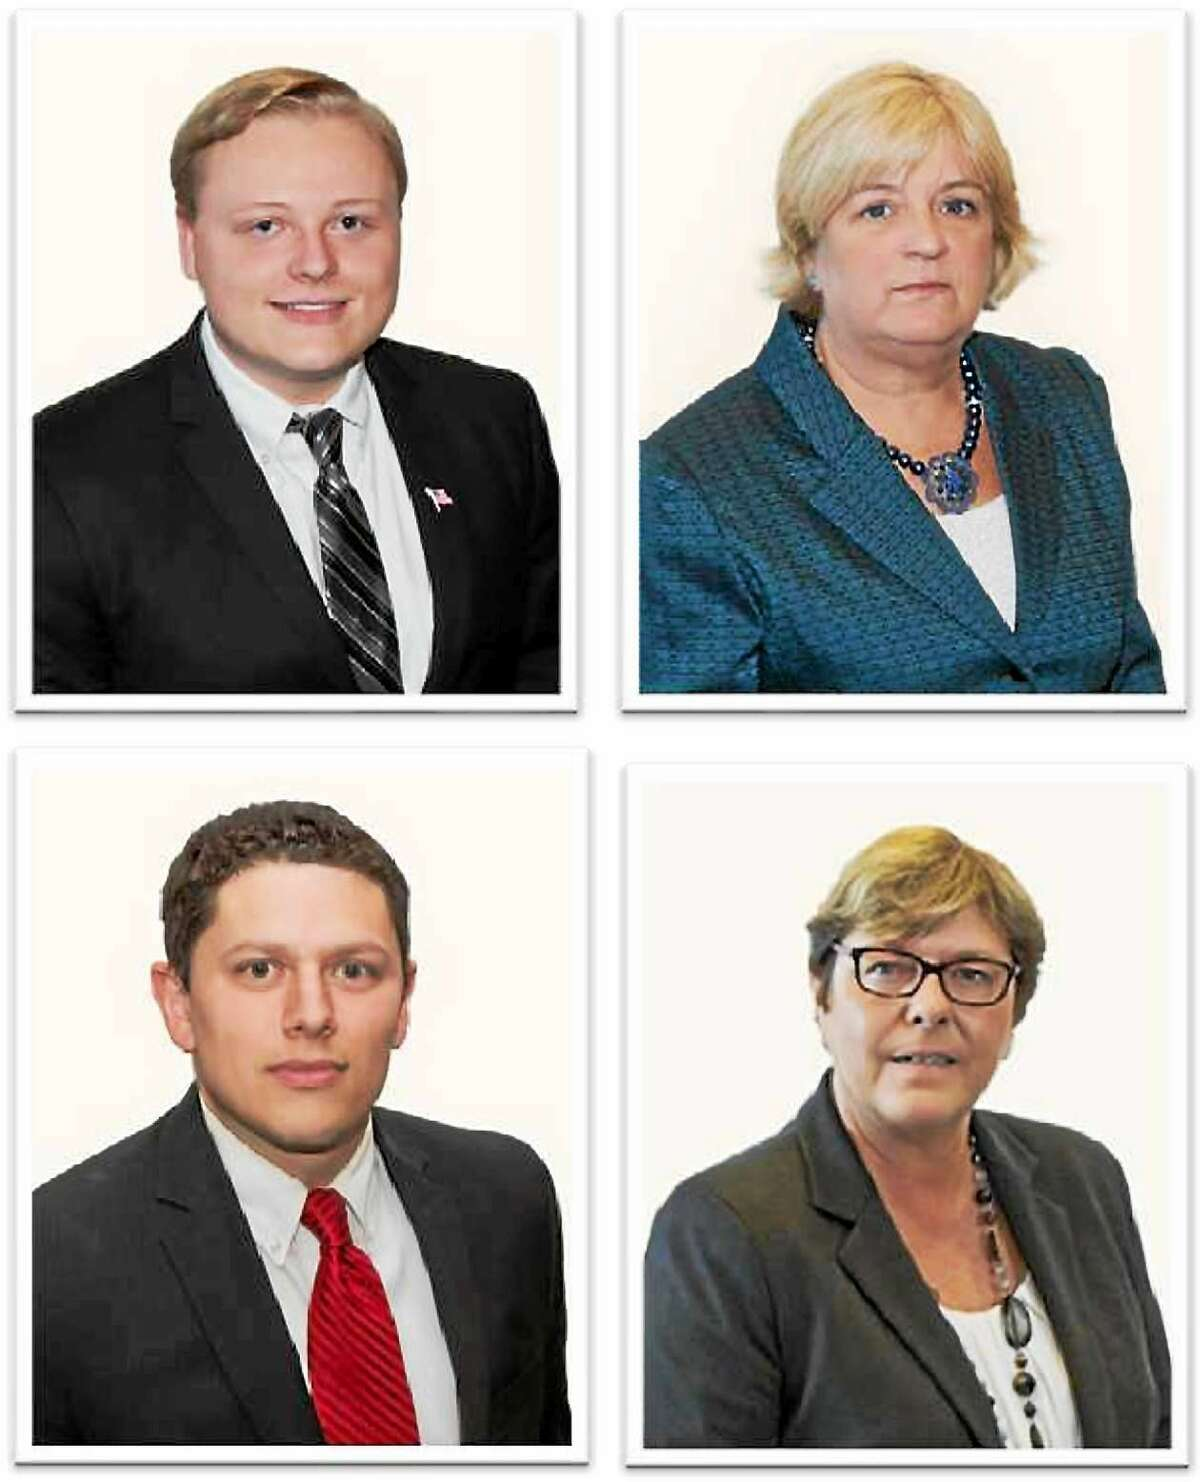 Clockwise from top left are Republican Middletown Board of Education candidates Troy Meeker, Linda Salafia, Cheryl McClellan and Chris Petter.